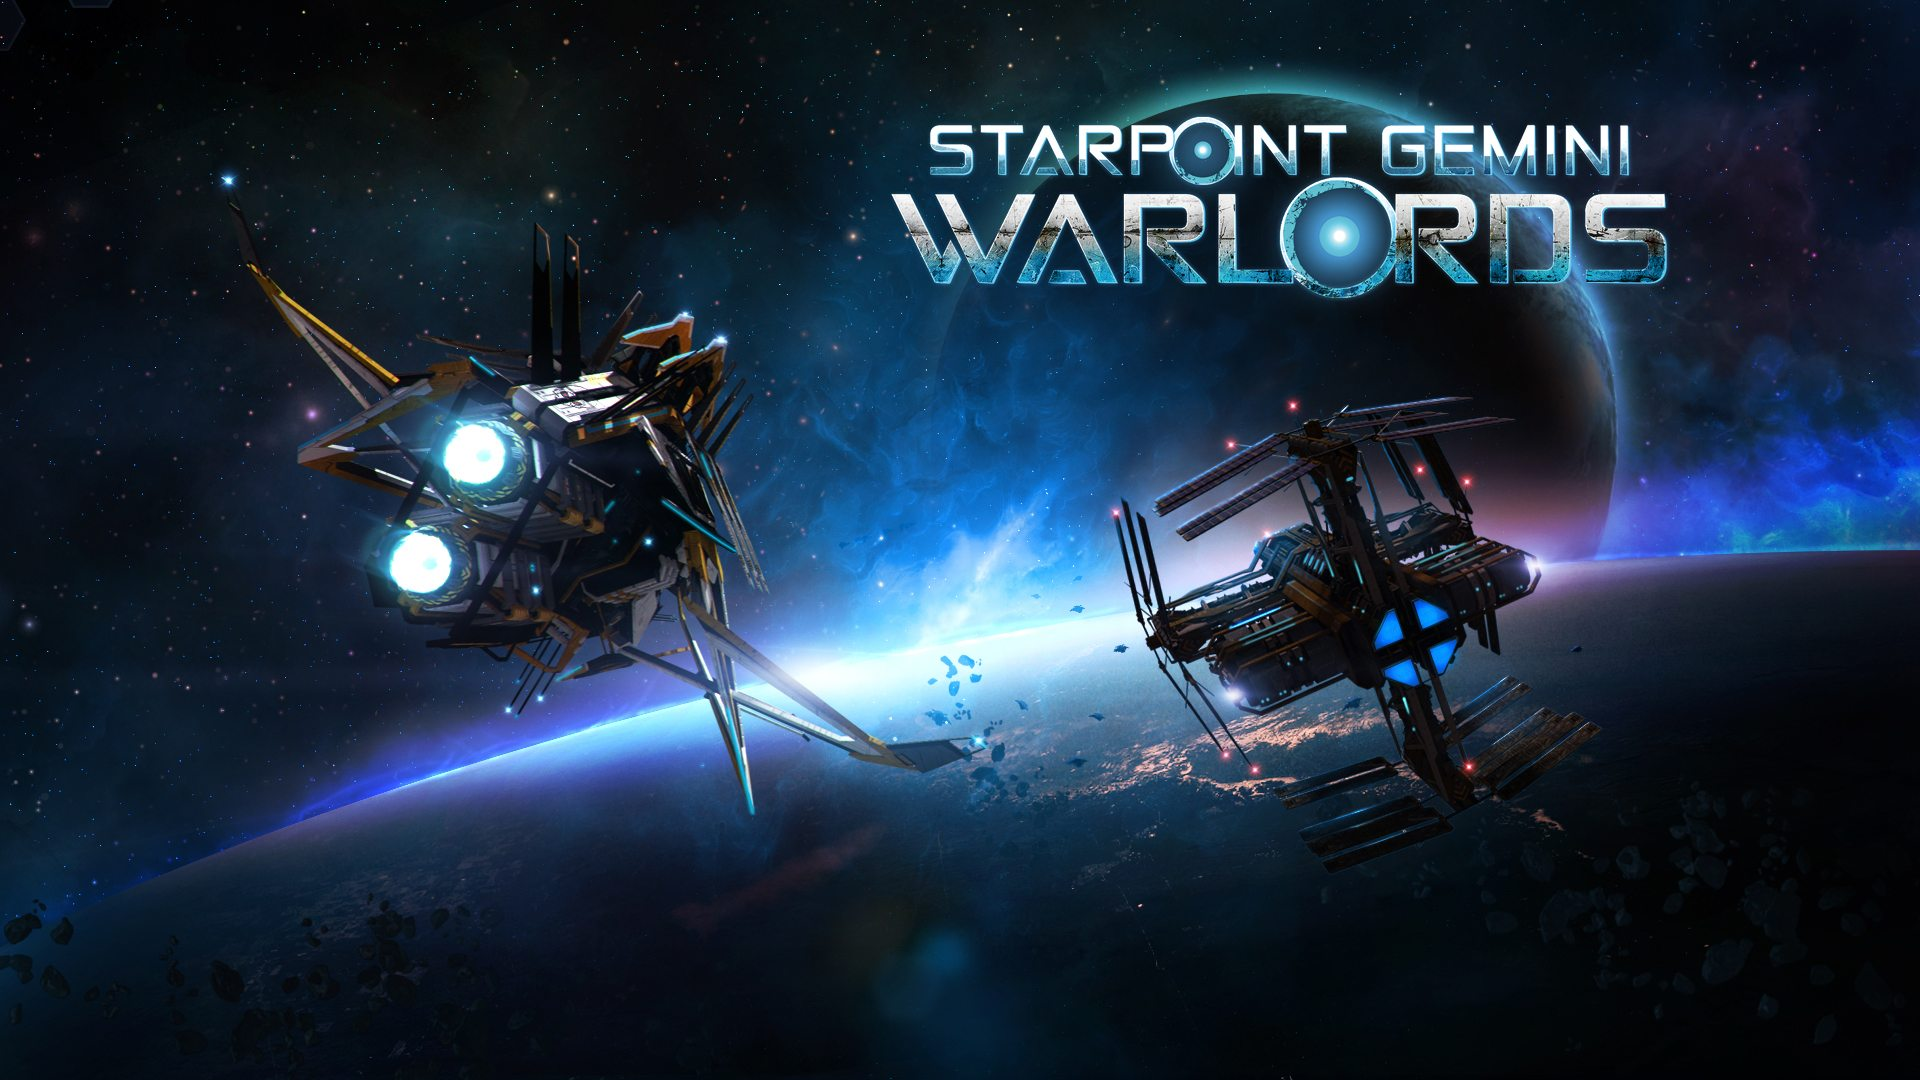 Starpoint Gemini Warlords Huge New Outerlands Update Lands Today on Steam